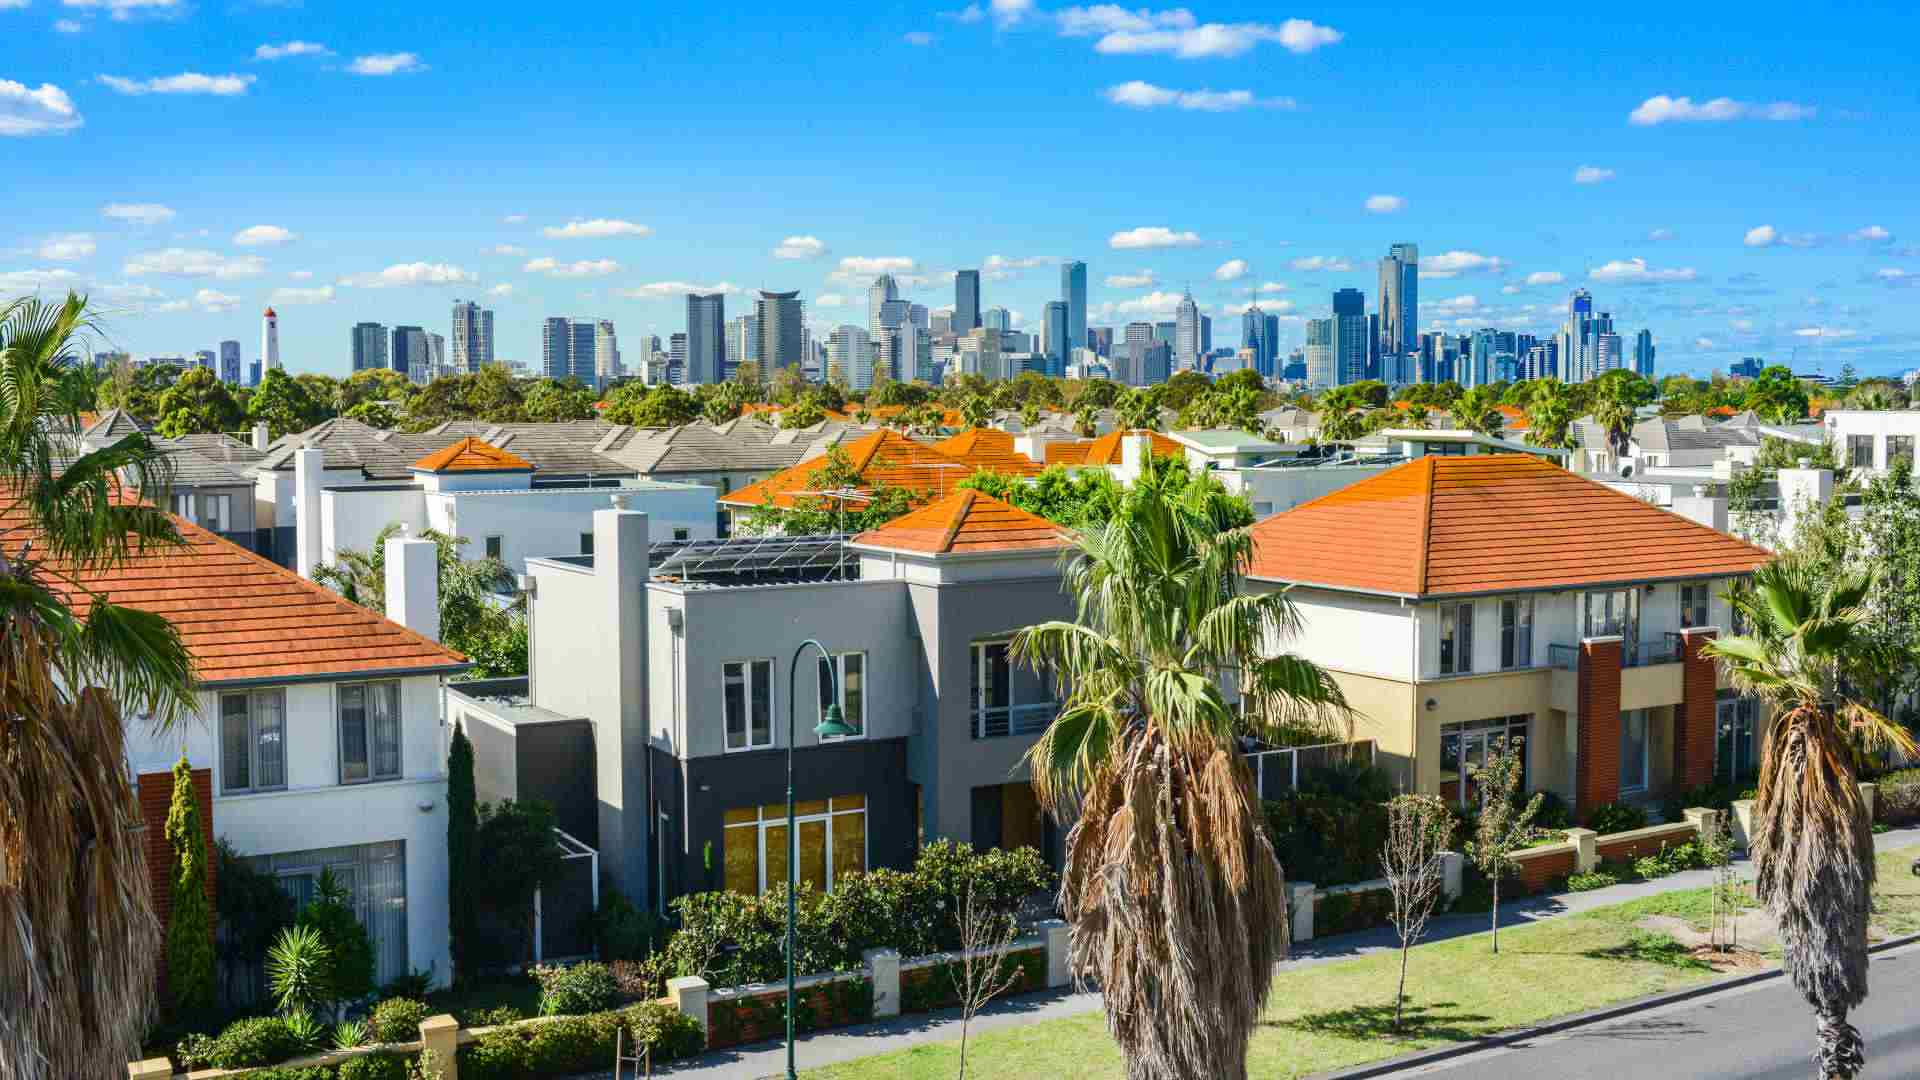 Melbourne's magic million median house price proving tricky for many